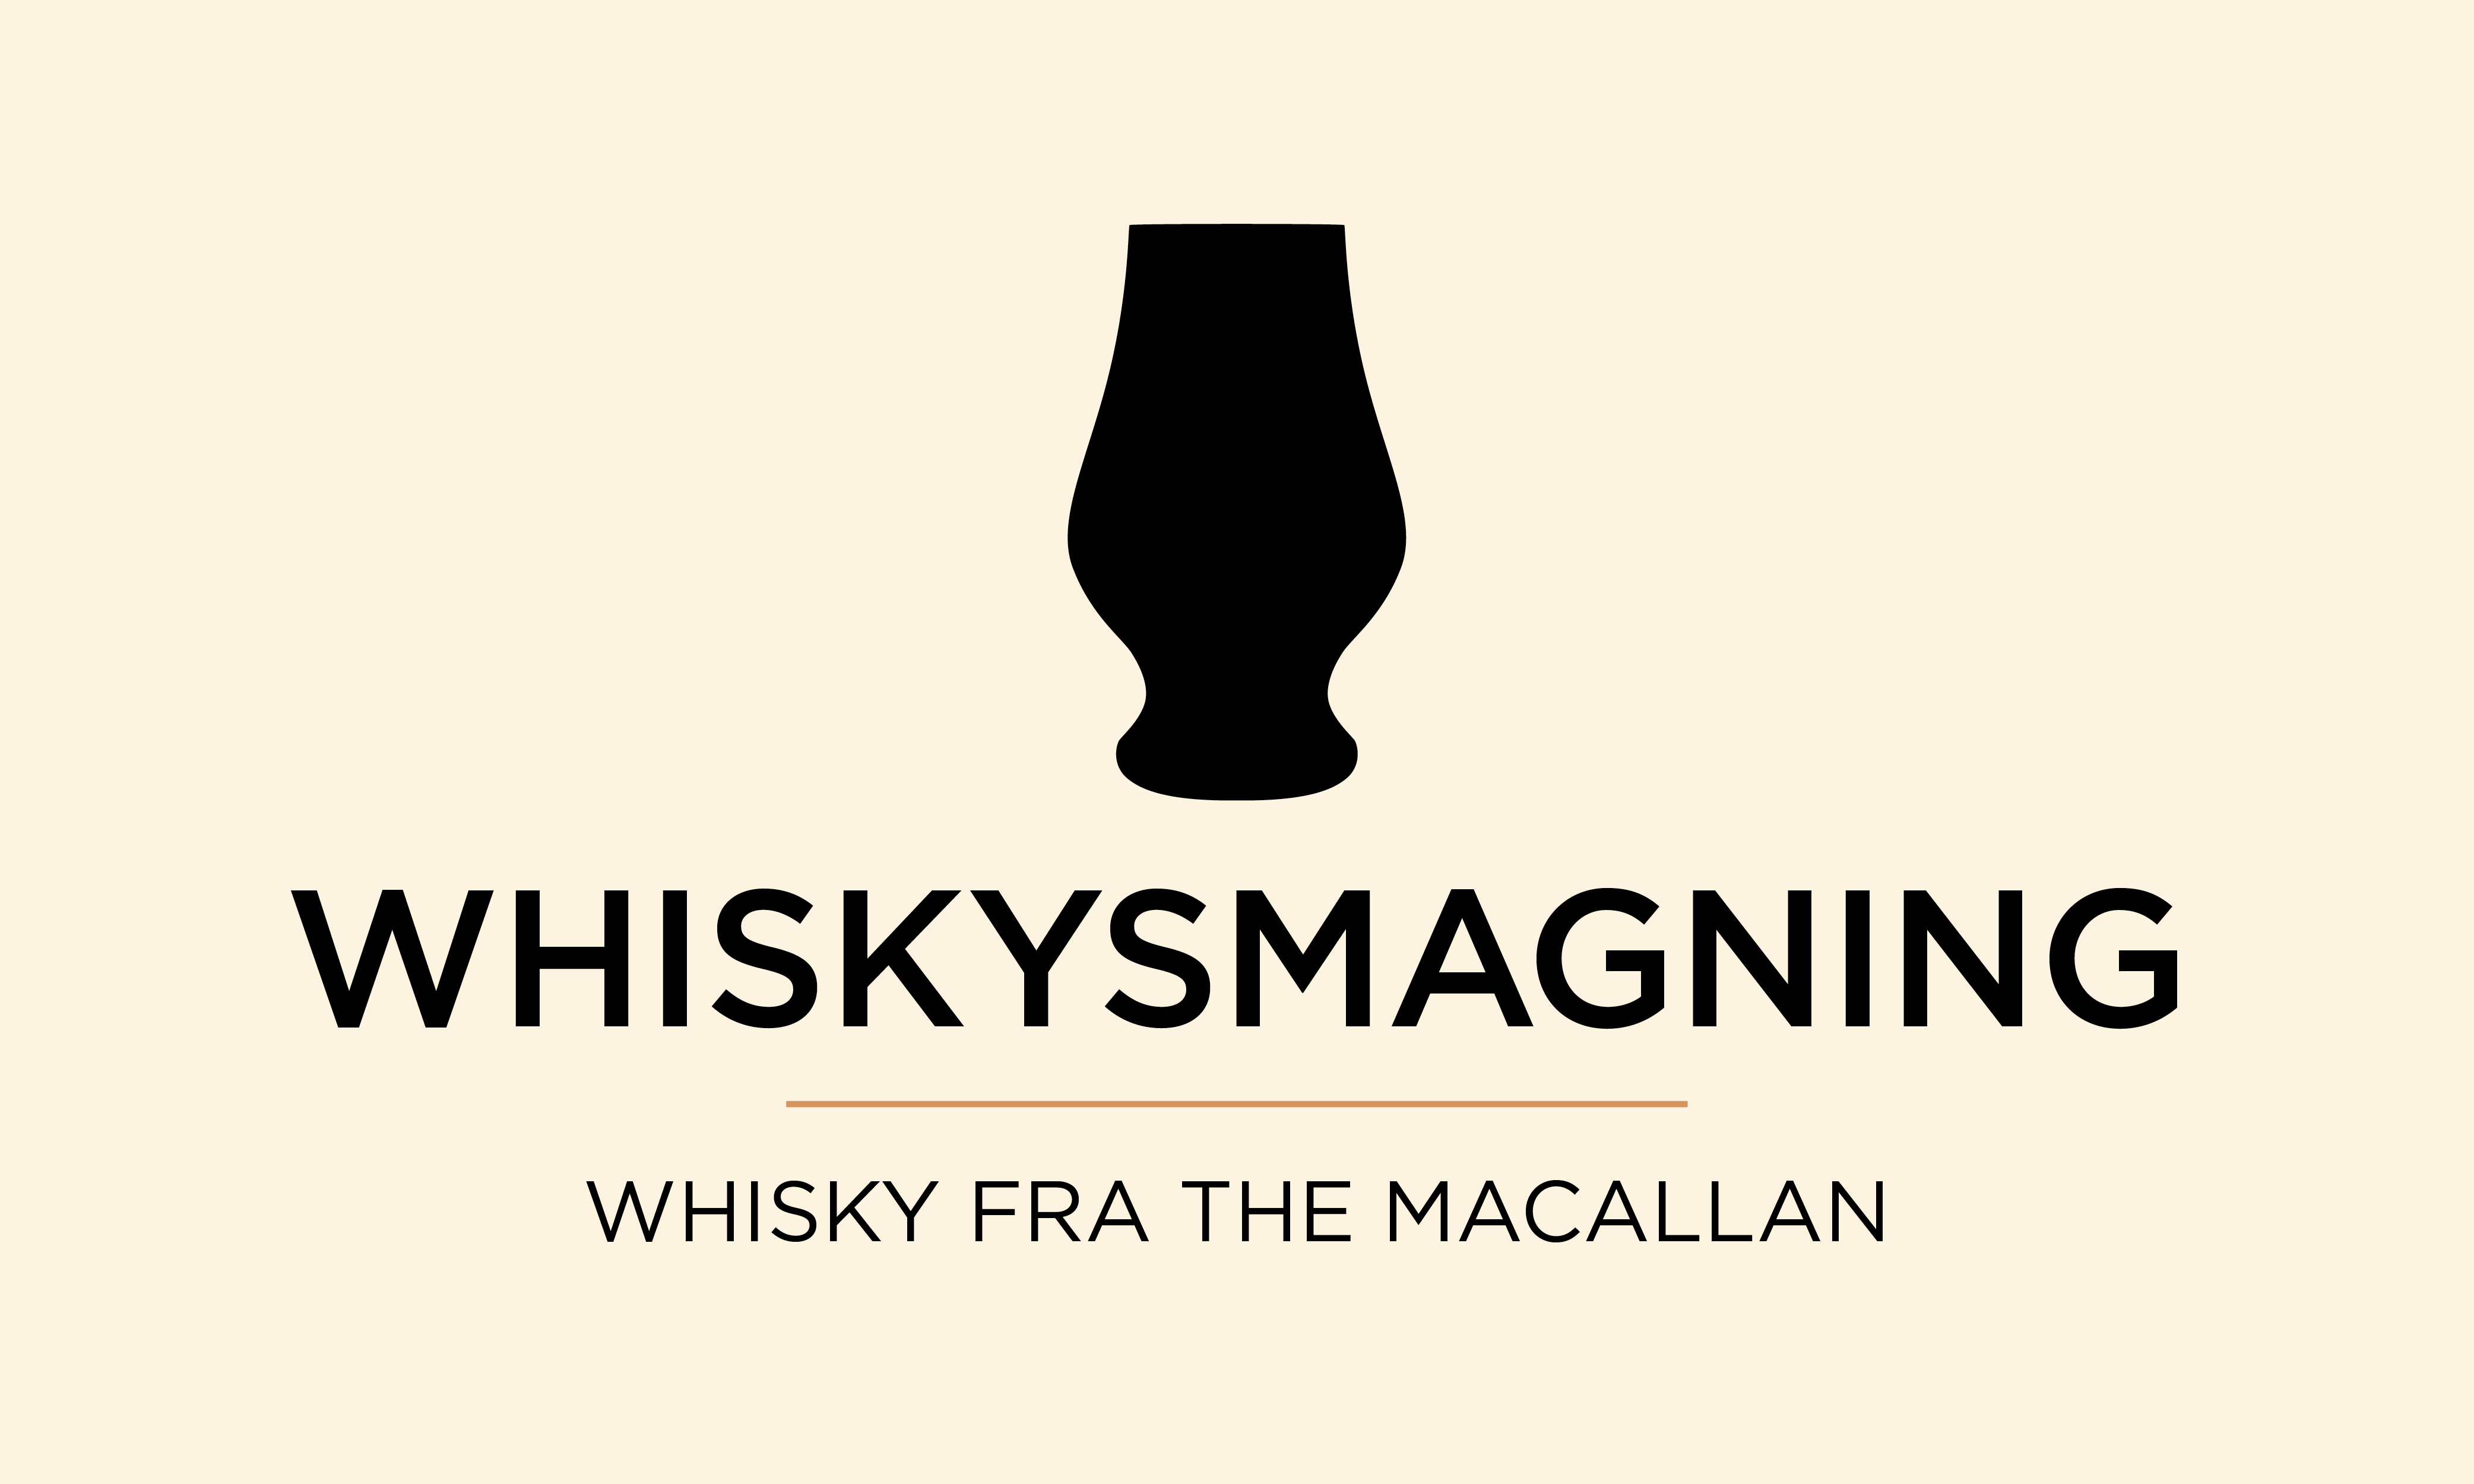 Whiskysmagning_Whisky-fra-The-Macallan_Billet_lifepeaks.png